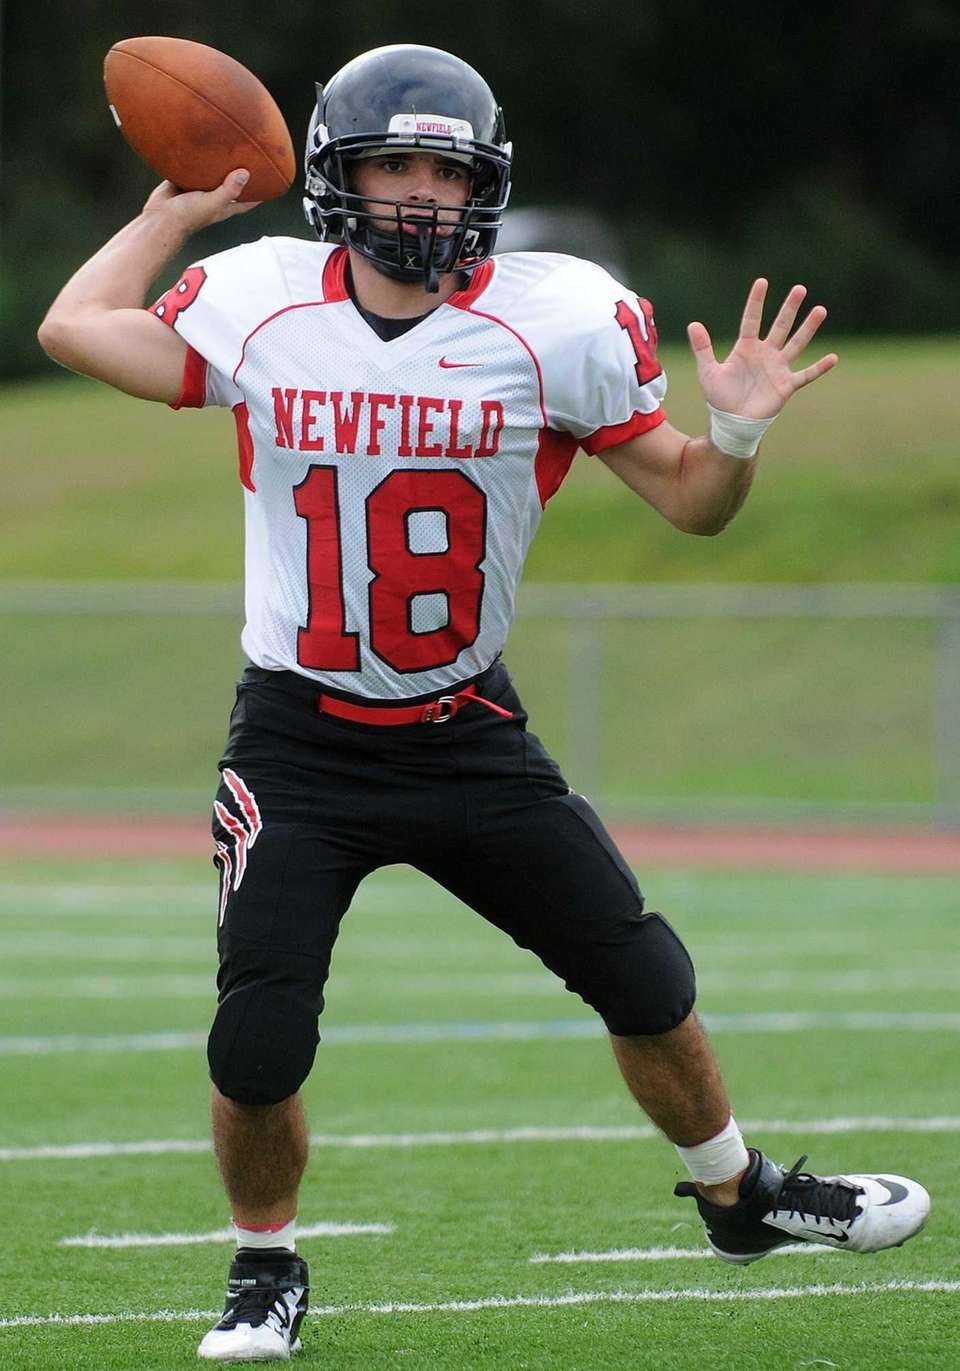 Newfield's quarterback Brandon Riggi throws a pass during